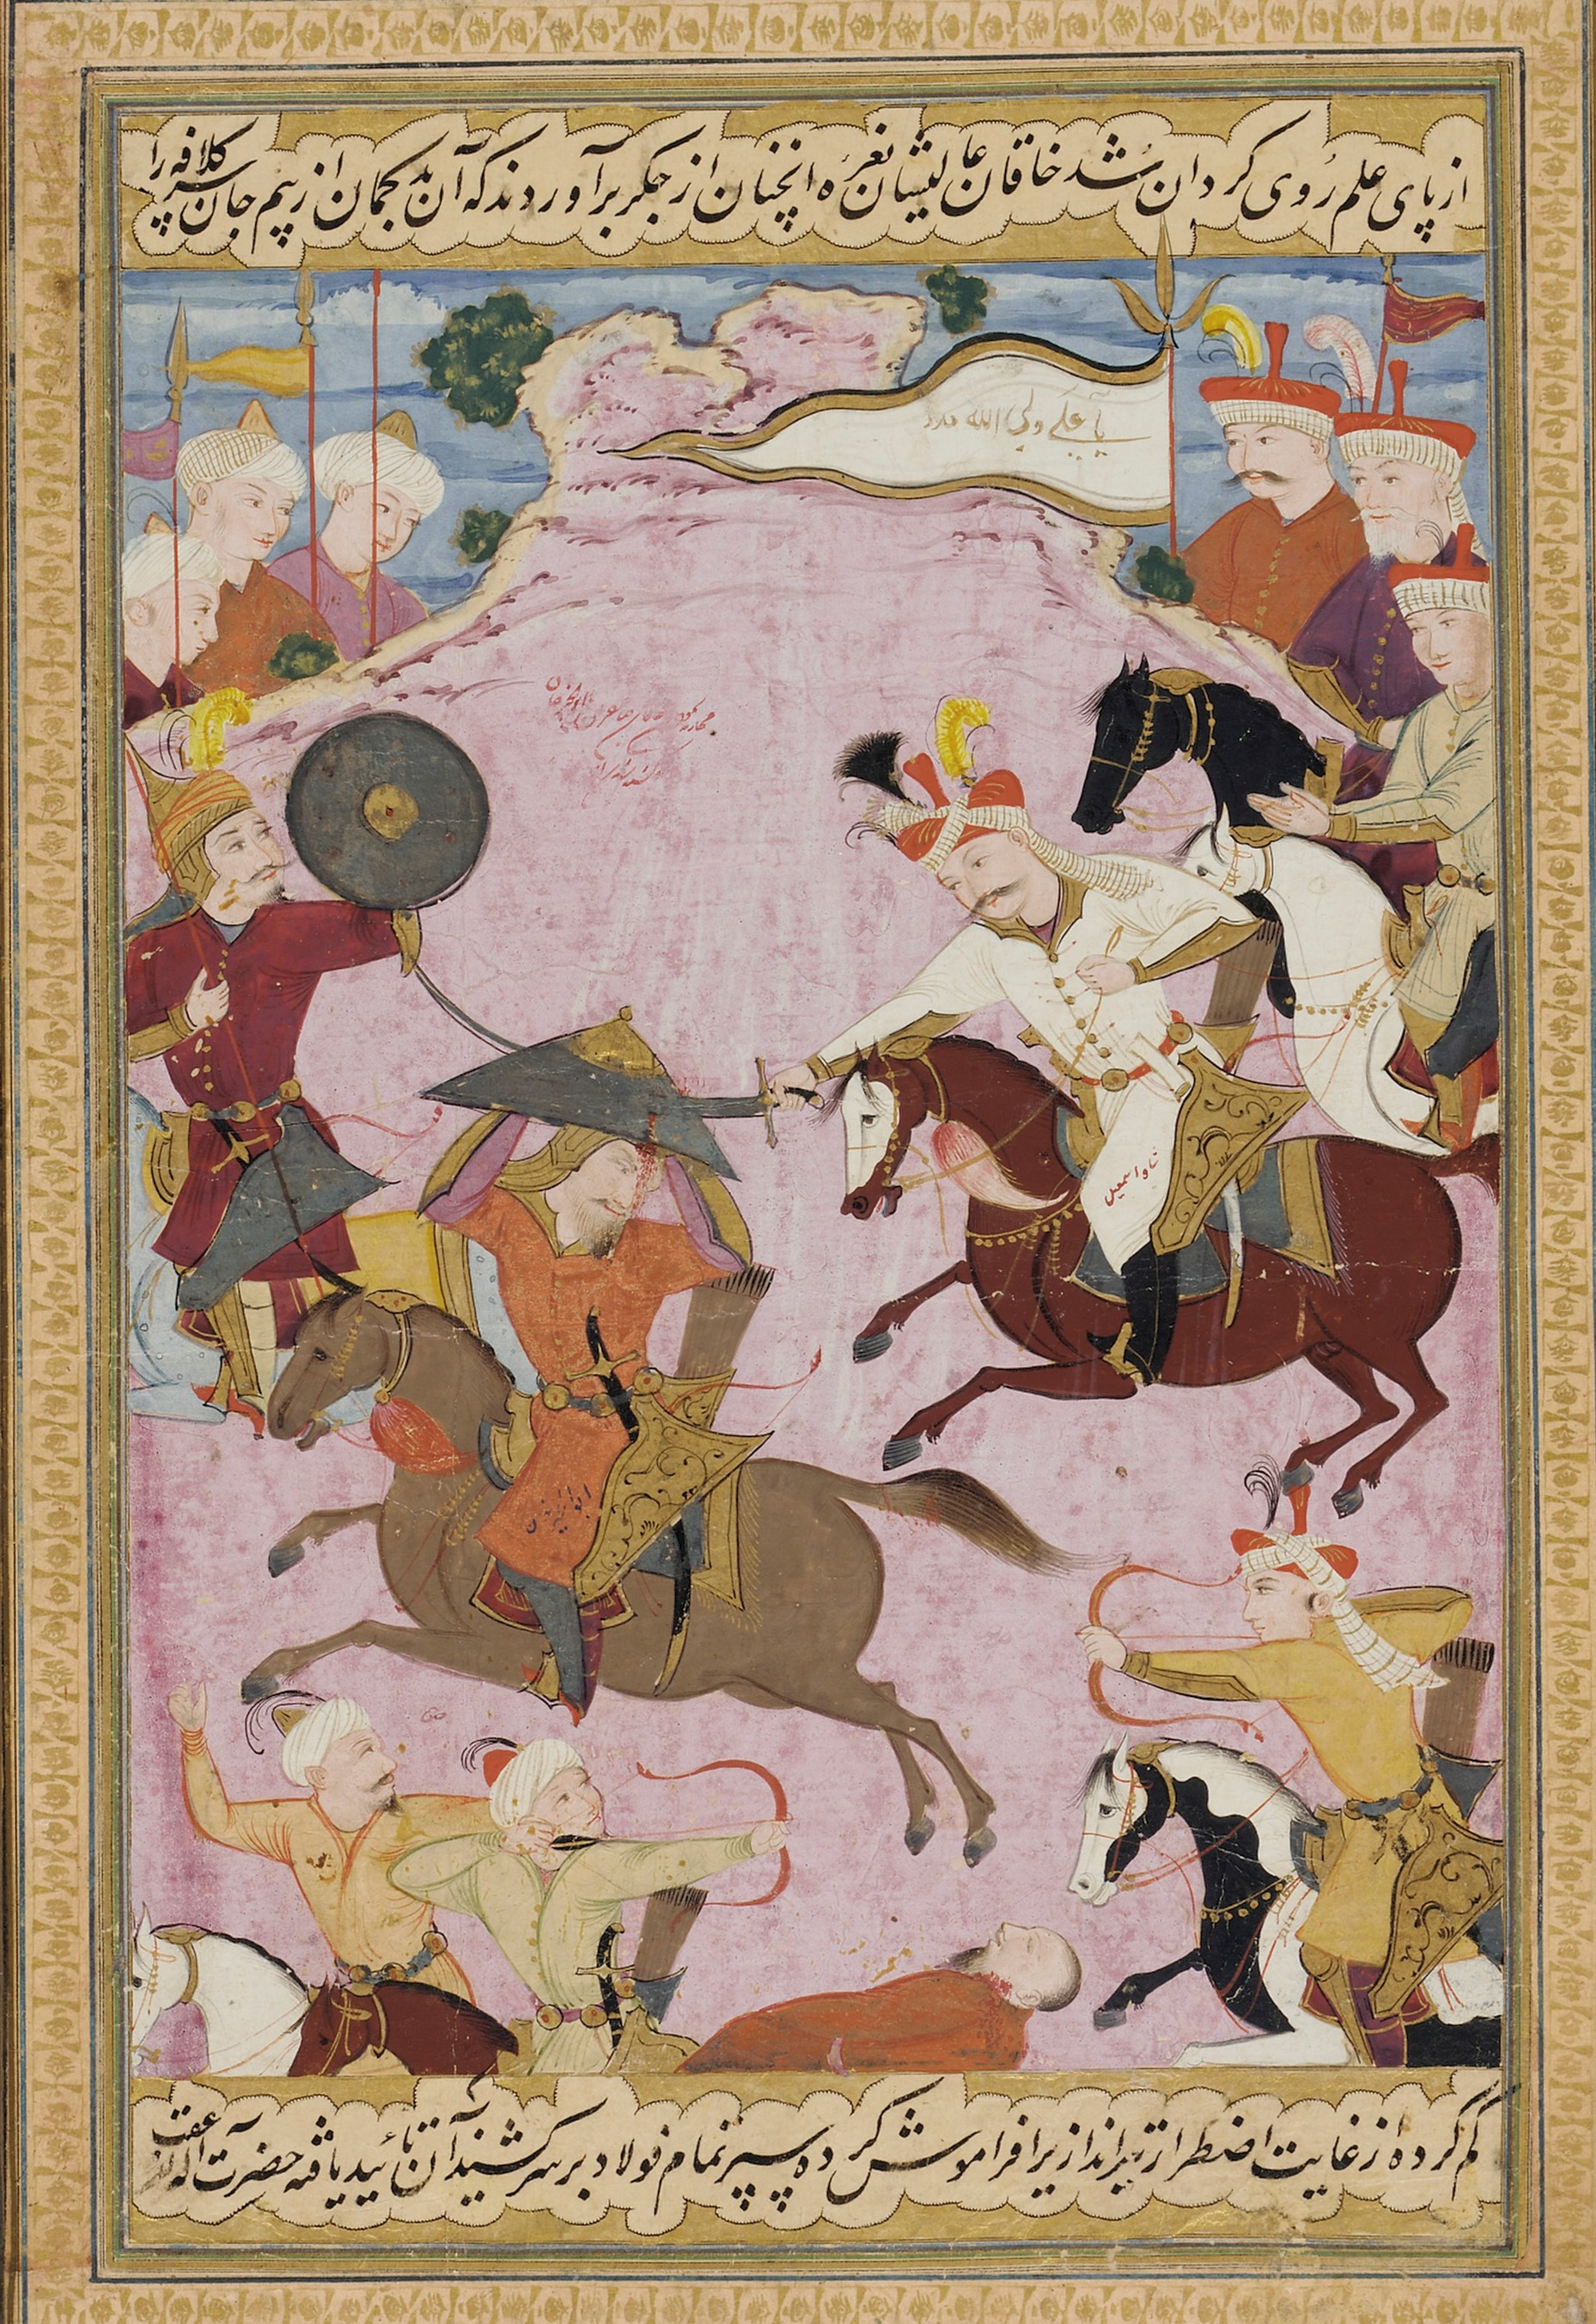 http://upload.wikimedia.org/wikipedia/commons/5/57/The_Battle_between_Shah_Ismail_and_Shaybani_Khan.jpg